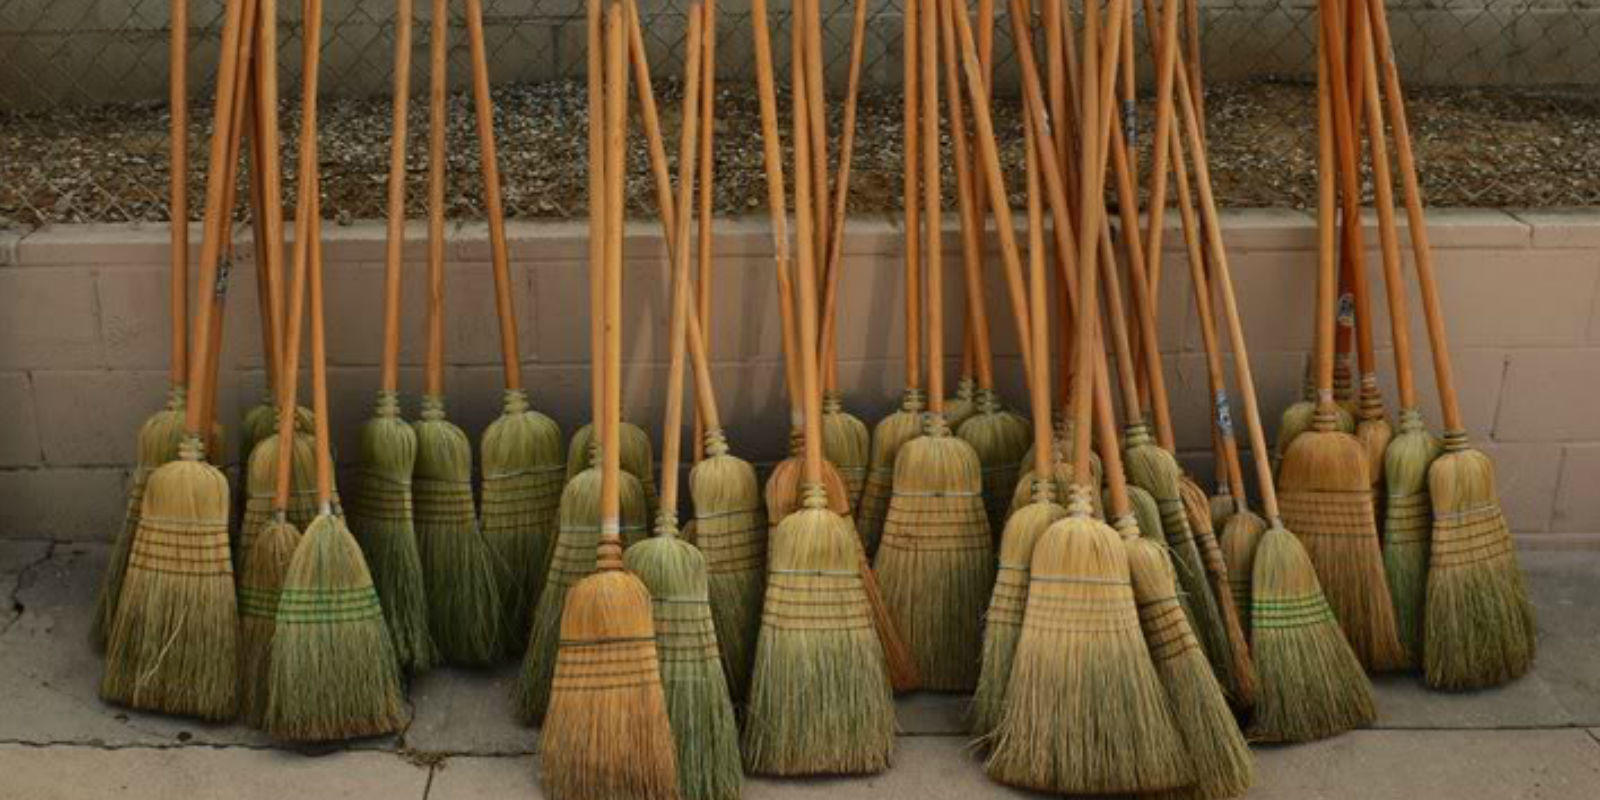 Norwegian Brooms